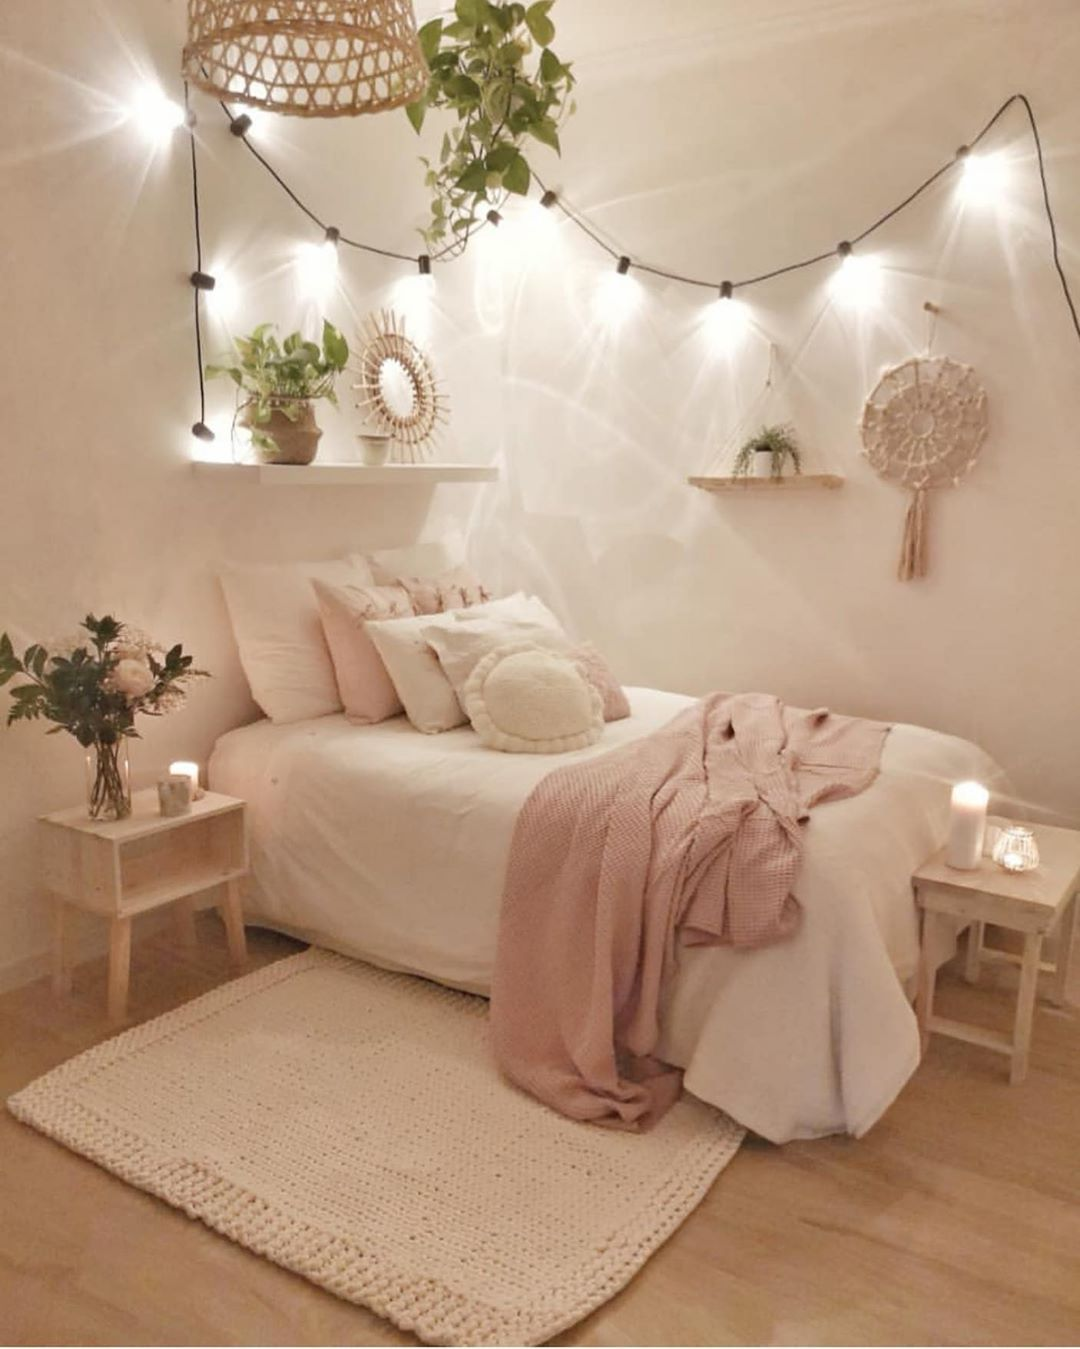 How lovely is this 💖 Tag a friend for inspo! 🌸 Credi